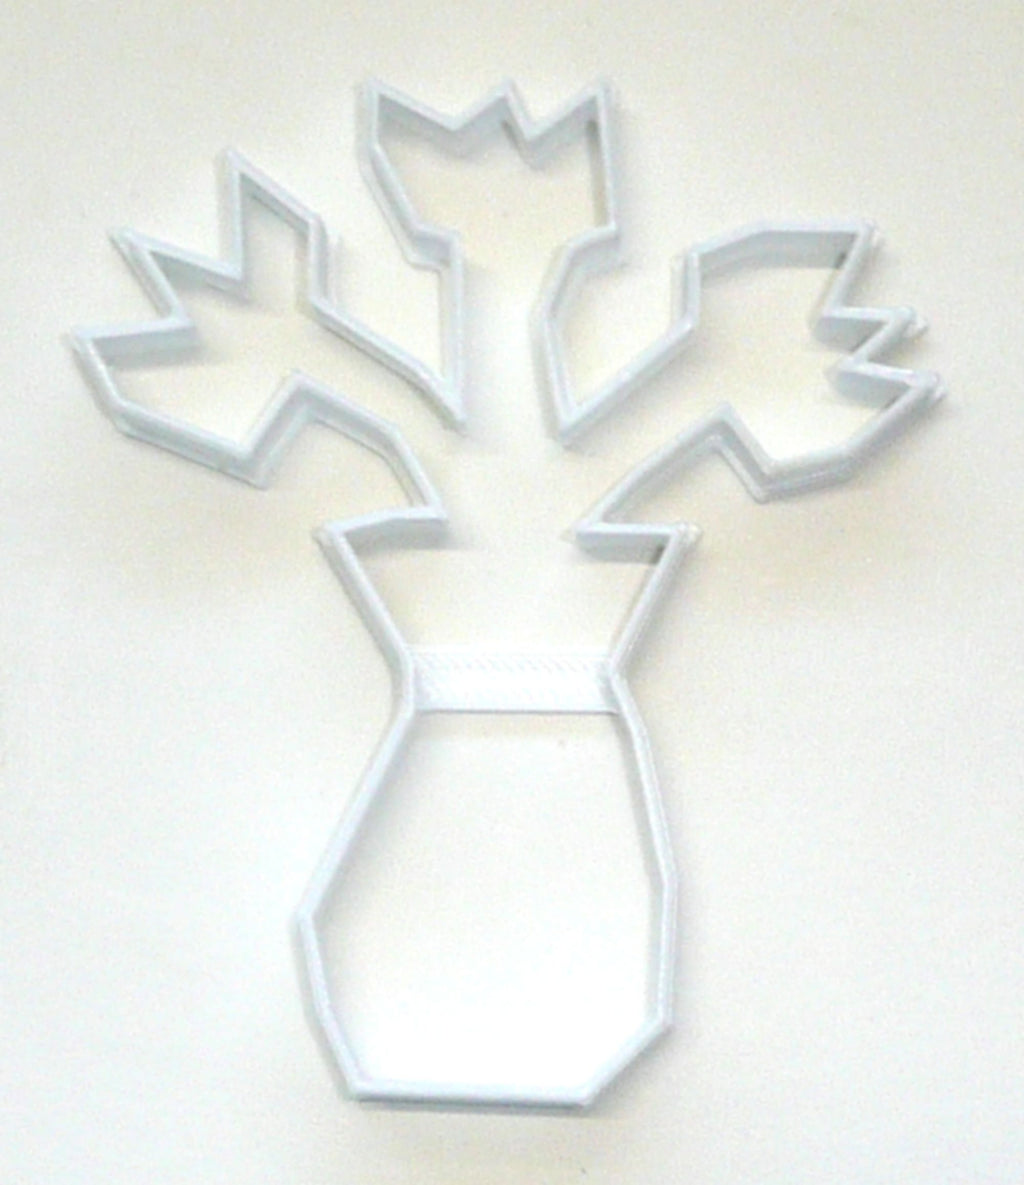 Flowers In A Vase Special Occasion Cookie Cutter Baking Tool Made in USA PR254